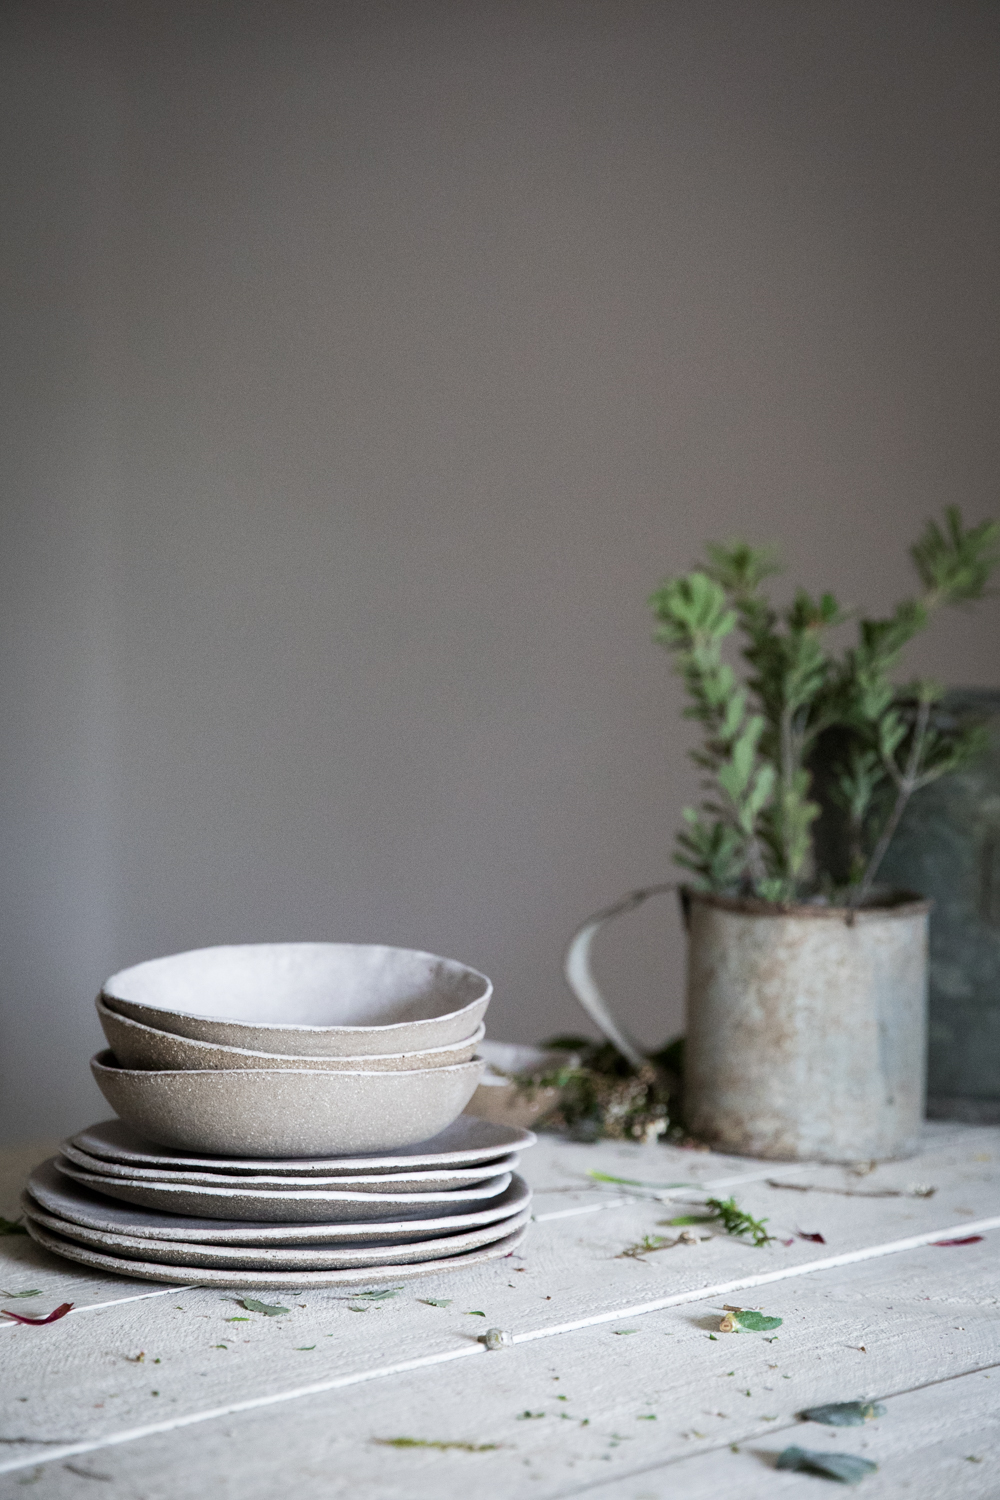 Interview with Cindy Hamrey from Nest & Nettle⎜The Botanical Kitchen